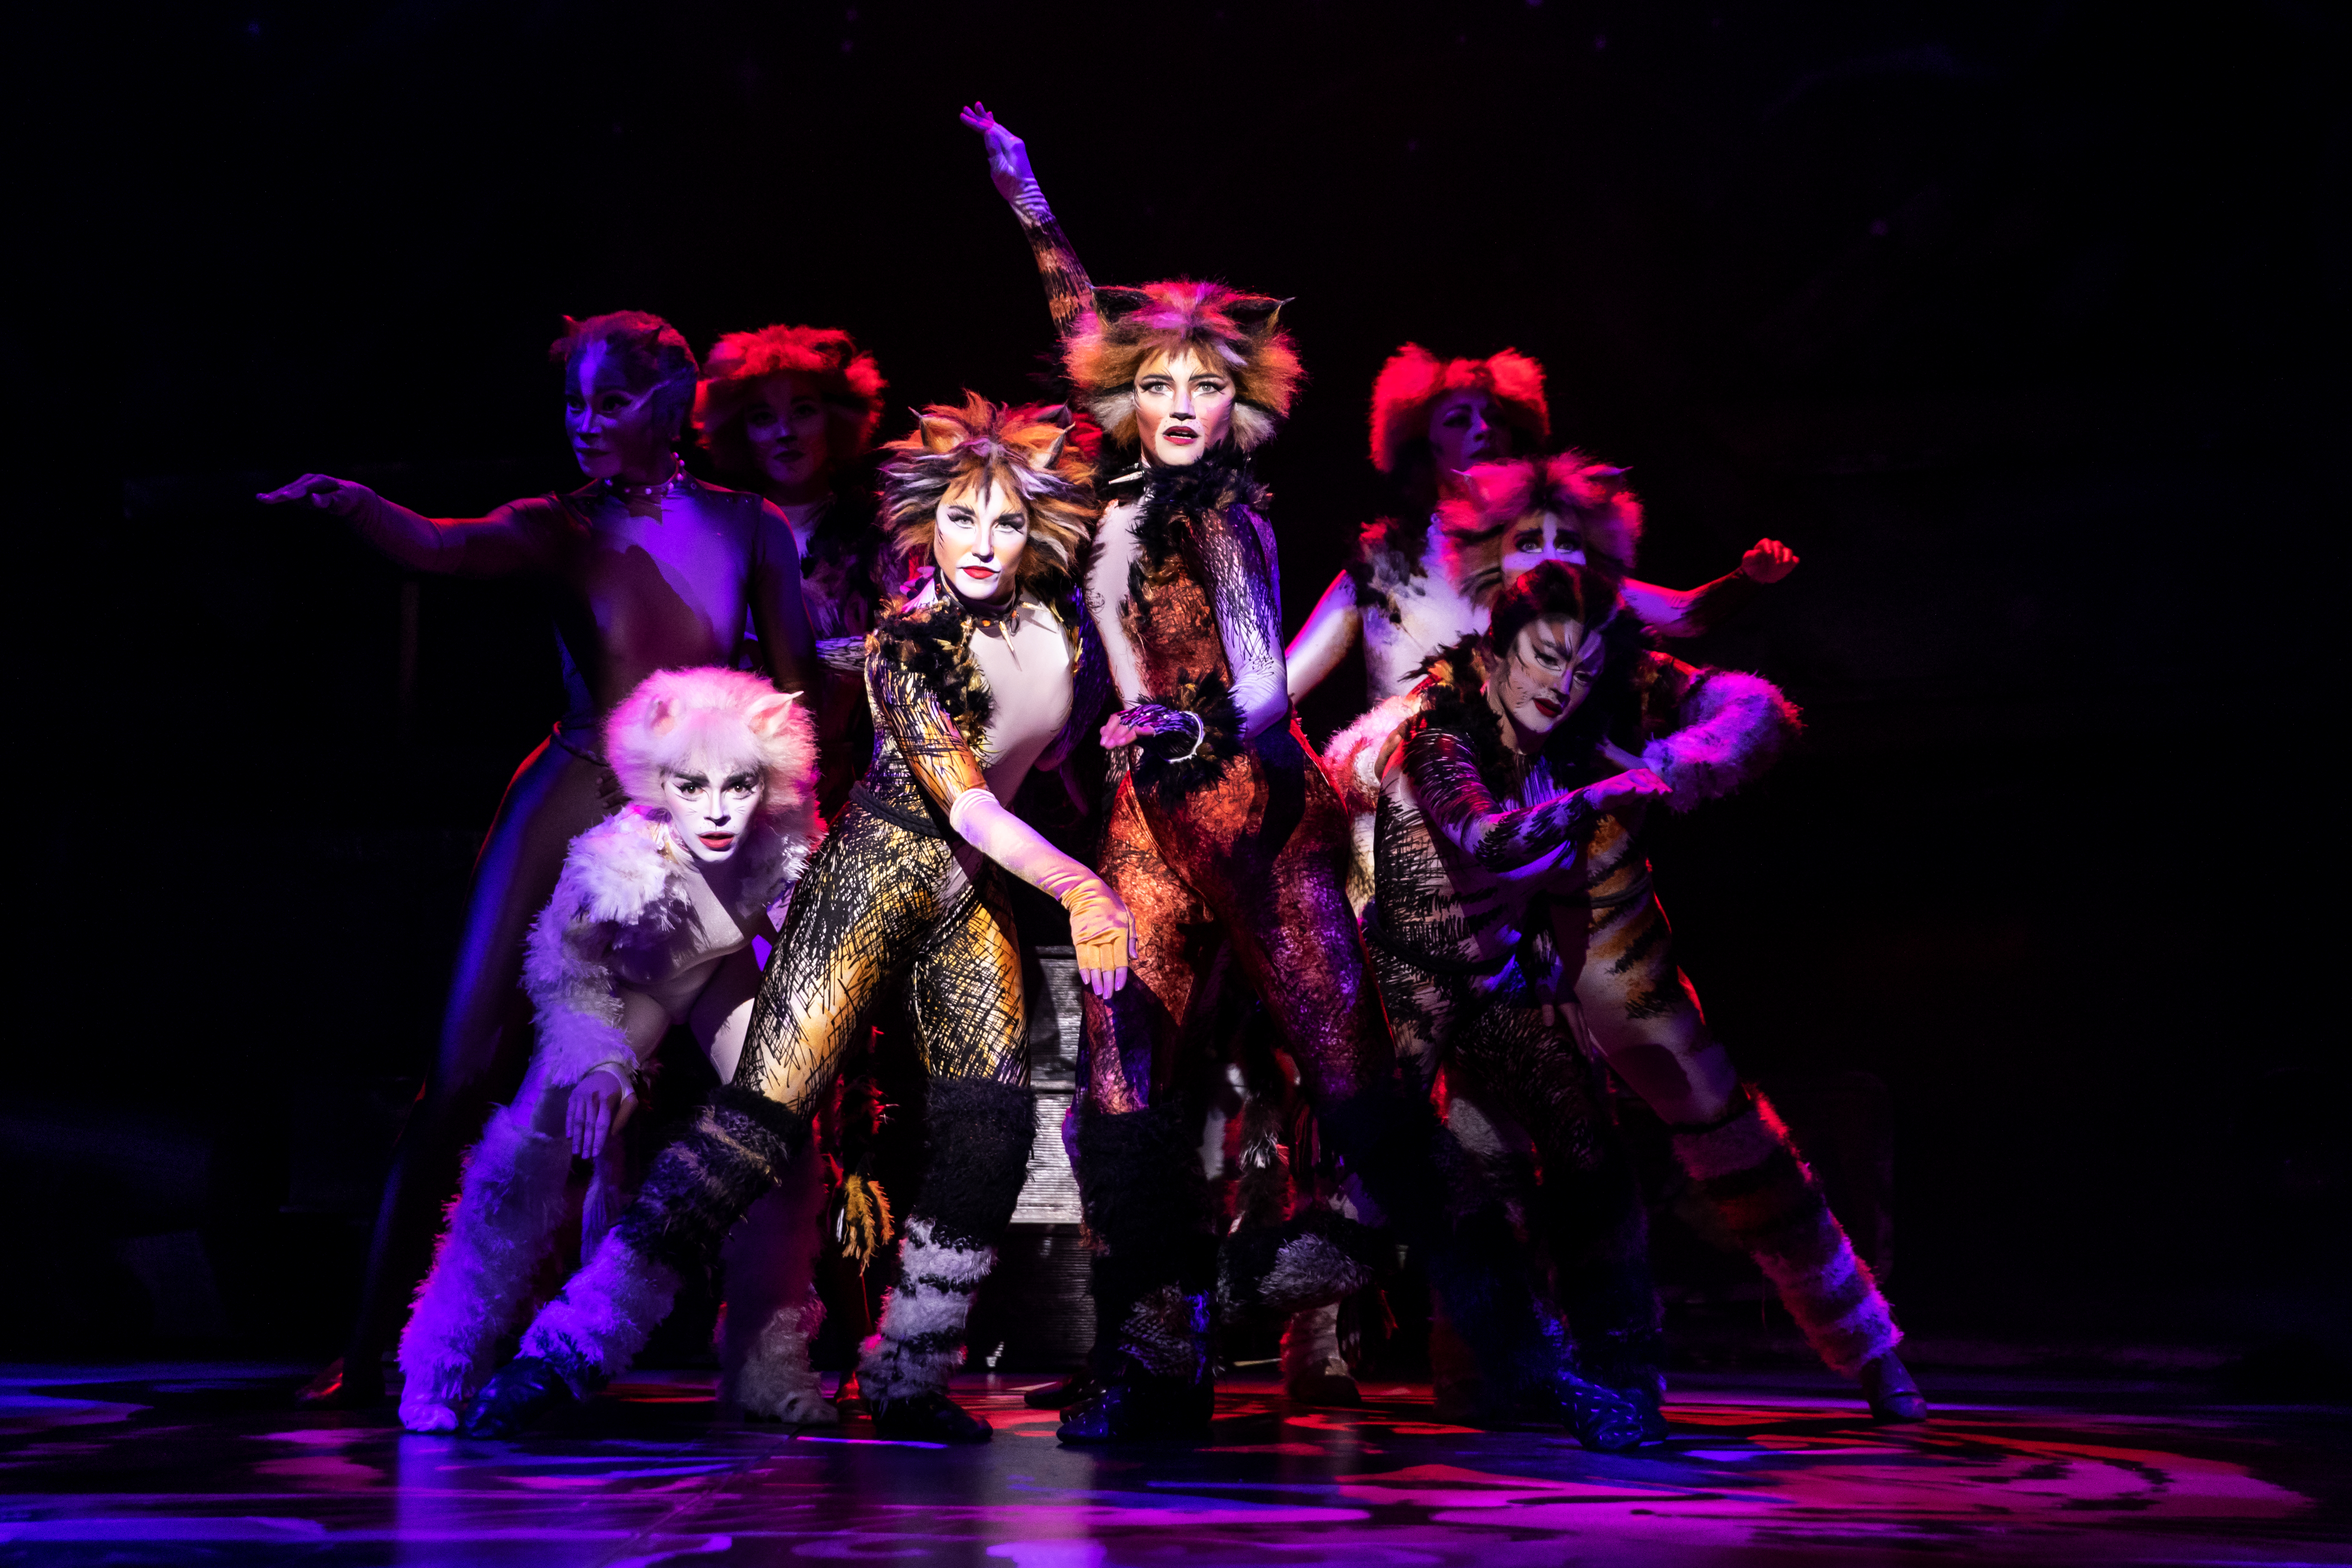 Cats' shows its strength on stage » Albuquerque Journal